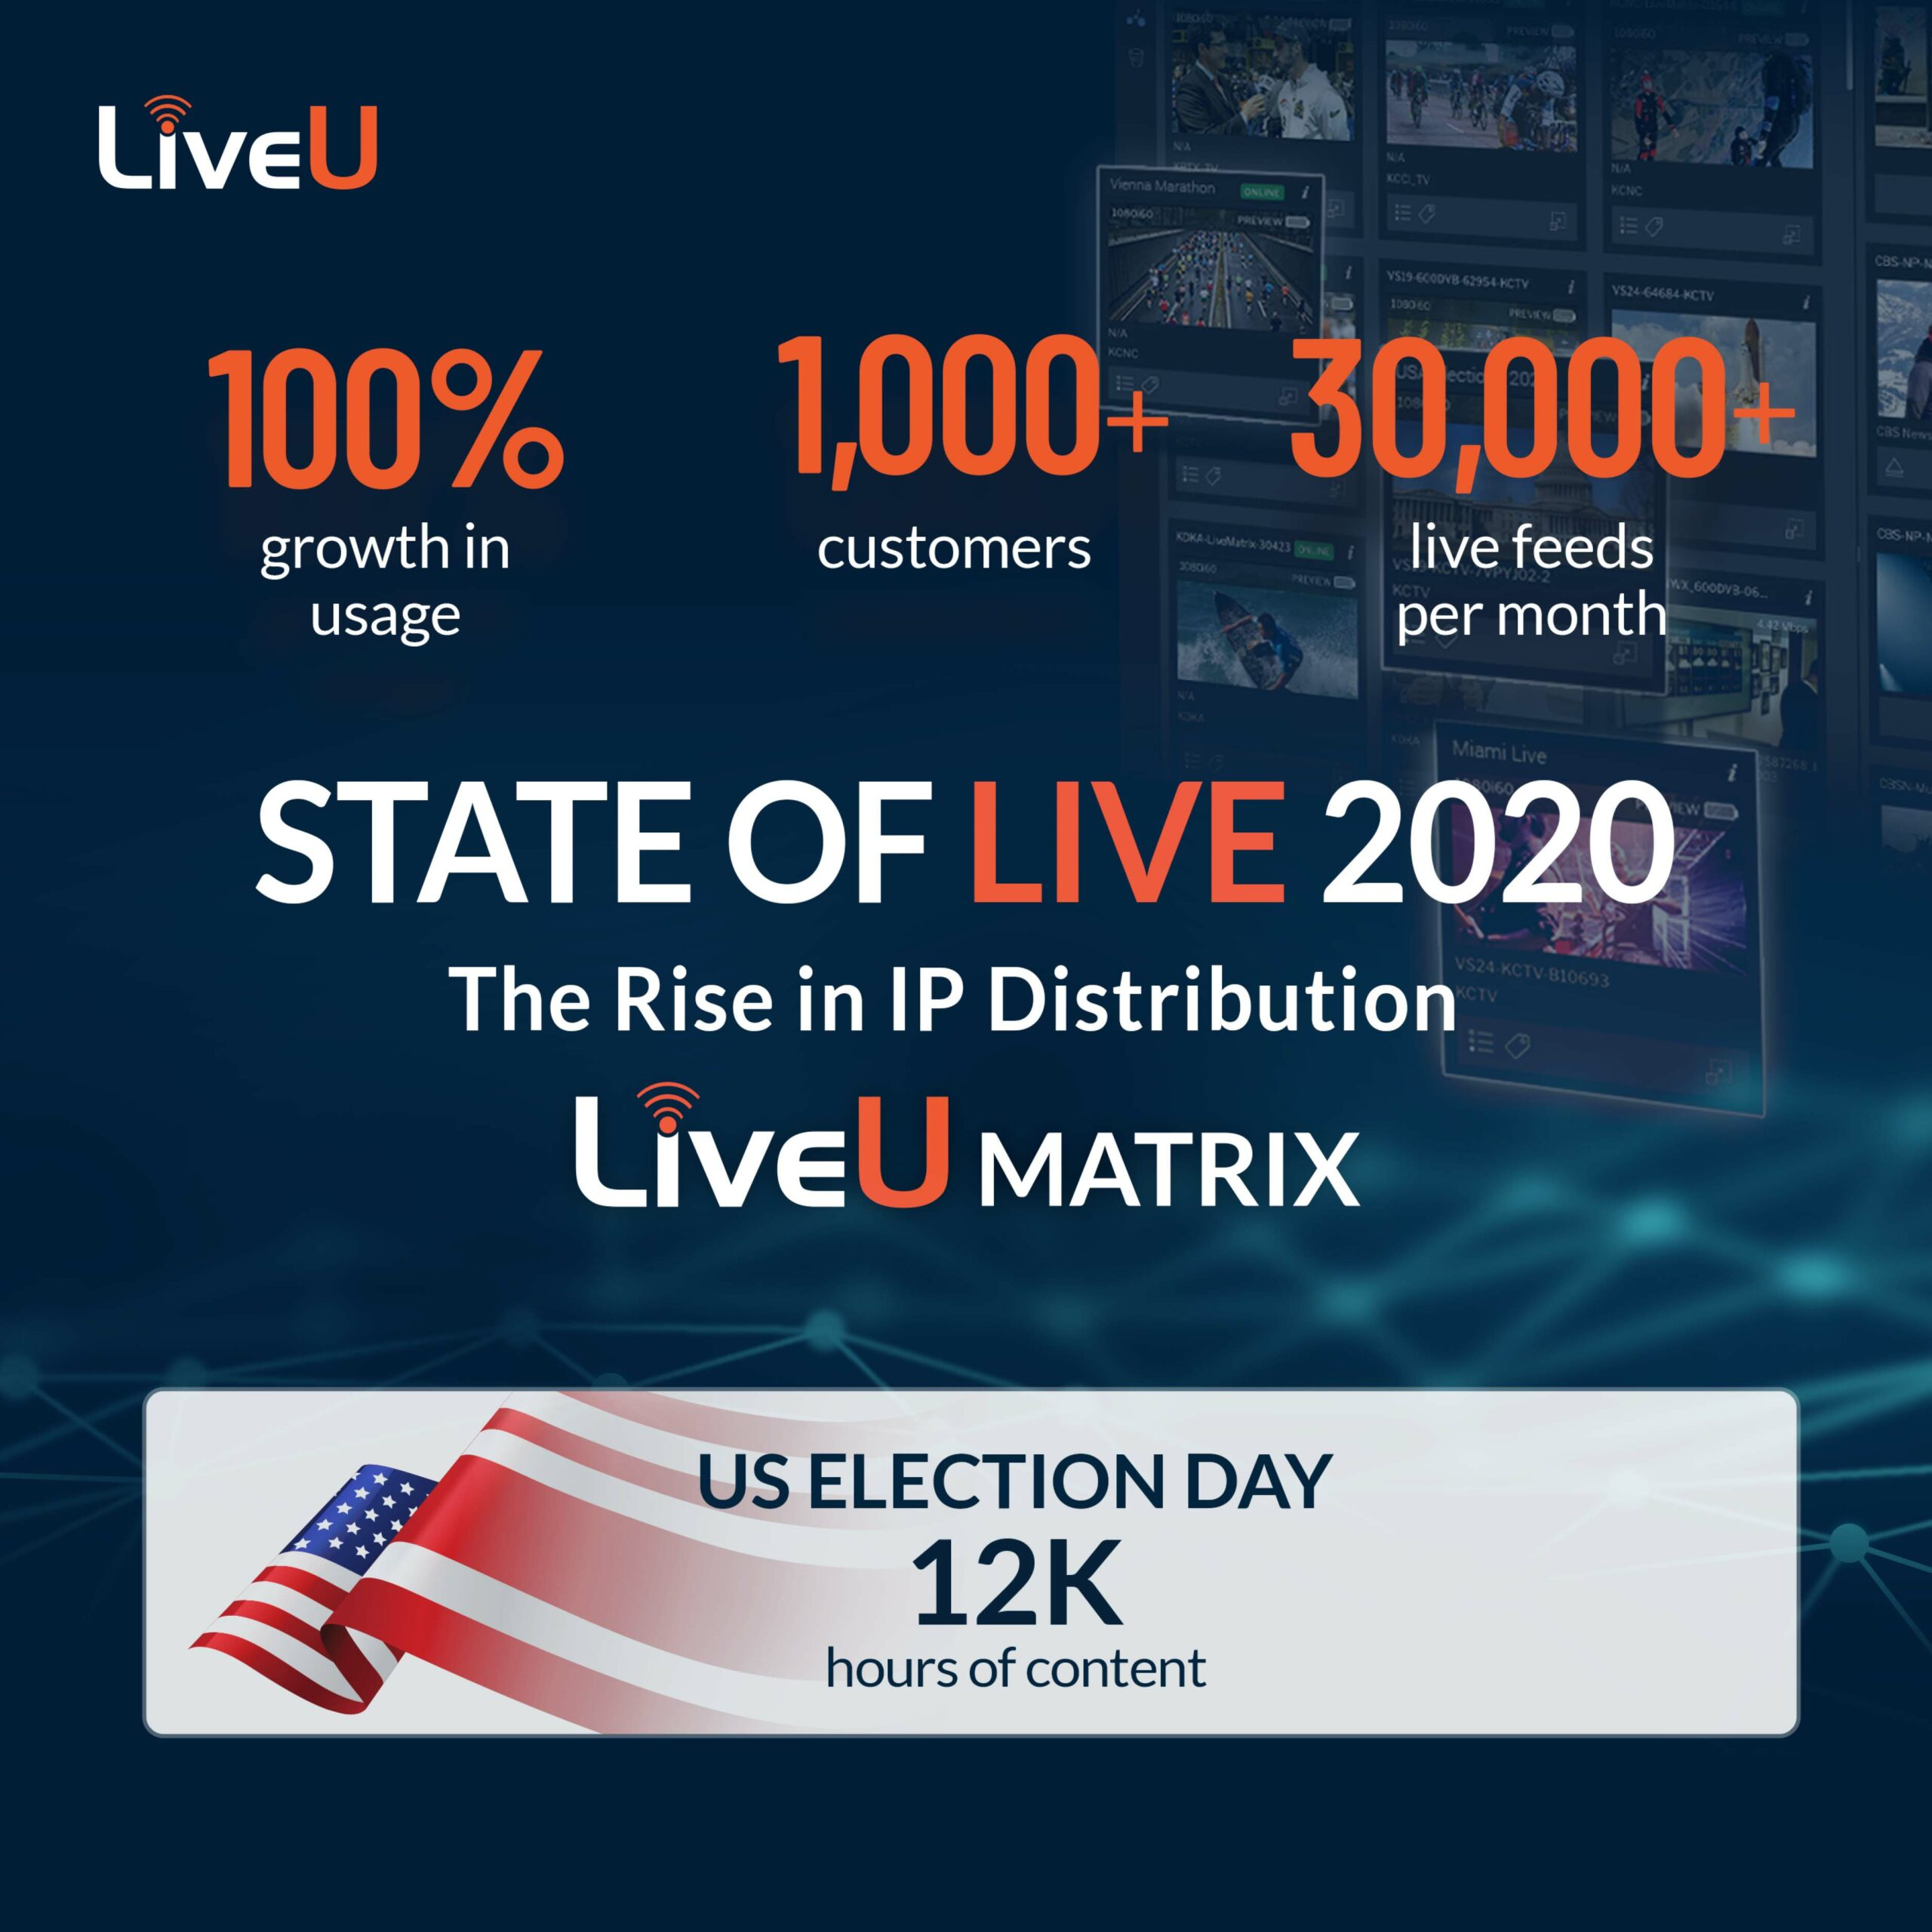 Liveu 2020 State Of Live Report Confirms Rise In Live Ip Broadcasting For Contribution And Distribution Nab Show News 2020 Nab Show Media Partner And Producer Of Nab Show Live Broadcast Engineering News See more ideas about where do i live, hot springs, hemlock. live ip broadcasting for contribution